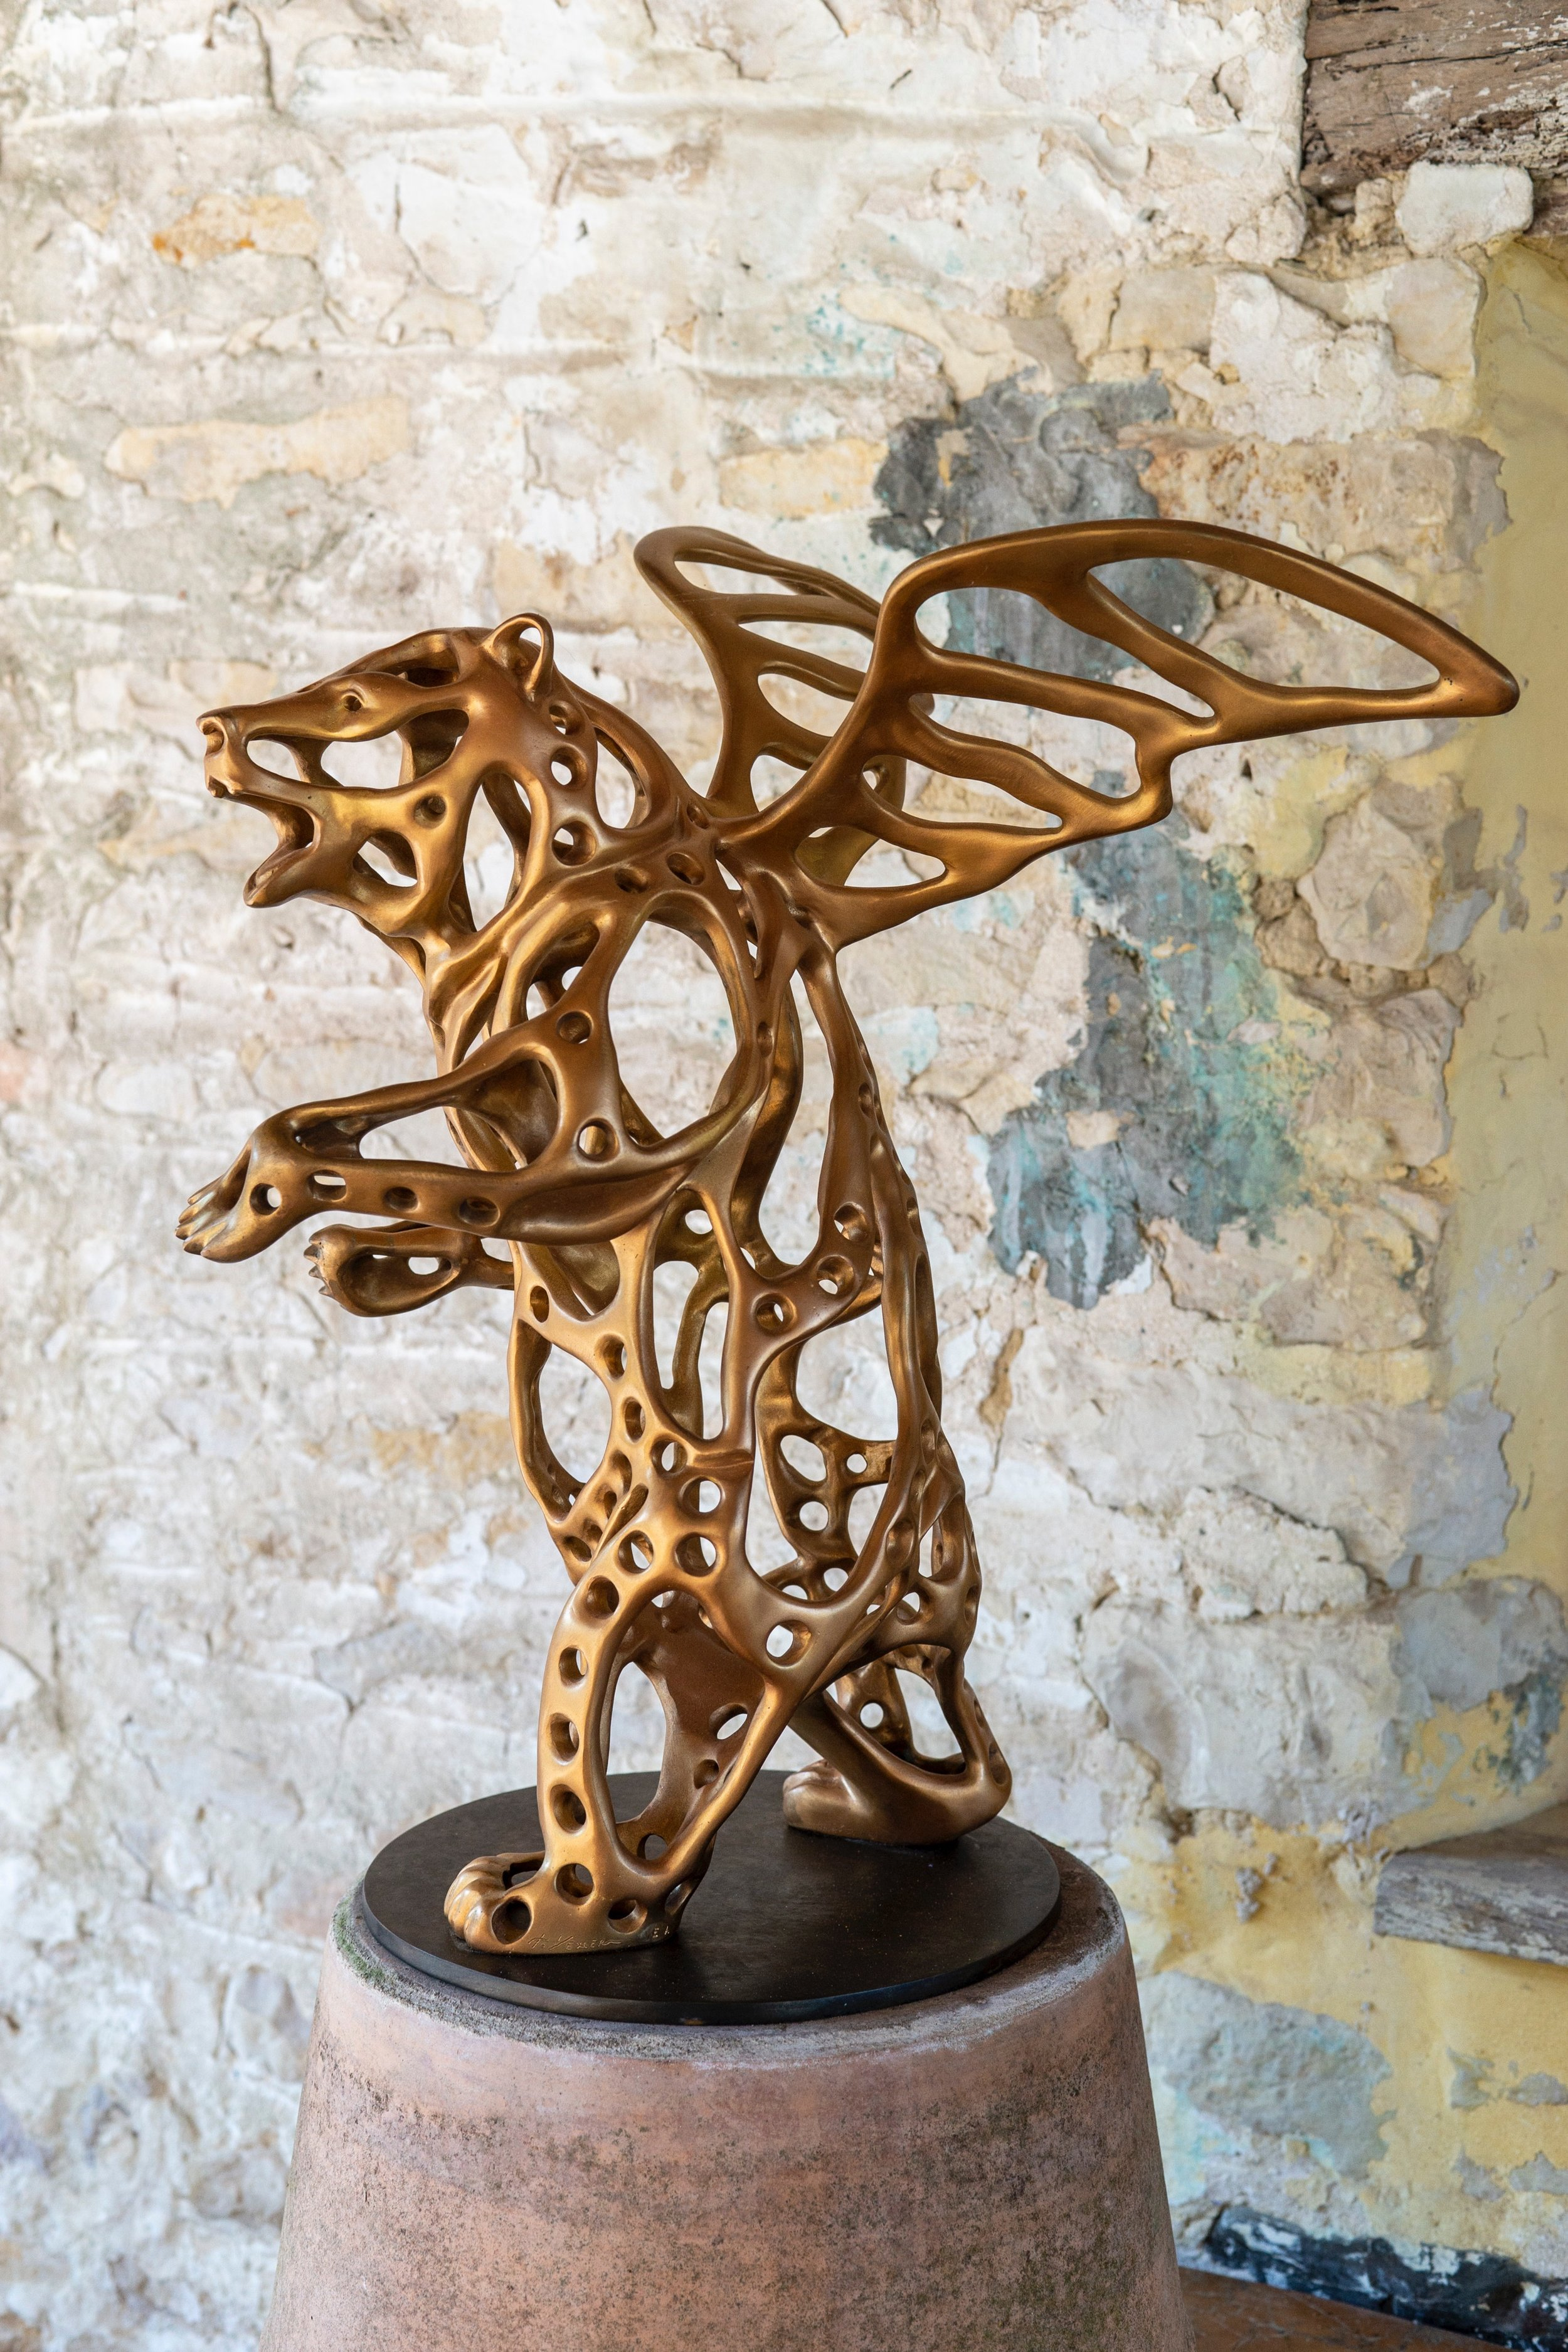 Richard Texier-Angel bear - Angel Bear en bronze- 53 x 50 x 43 cm- doré.jpg